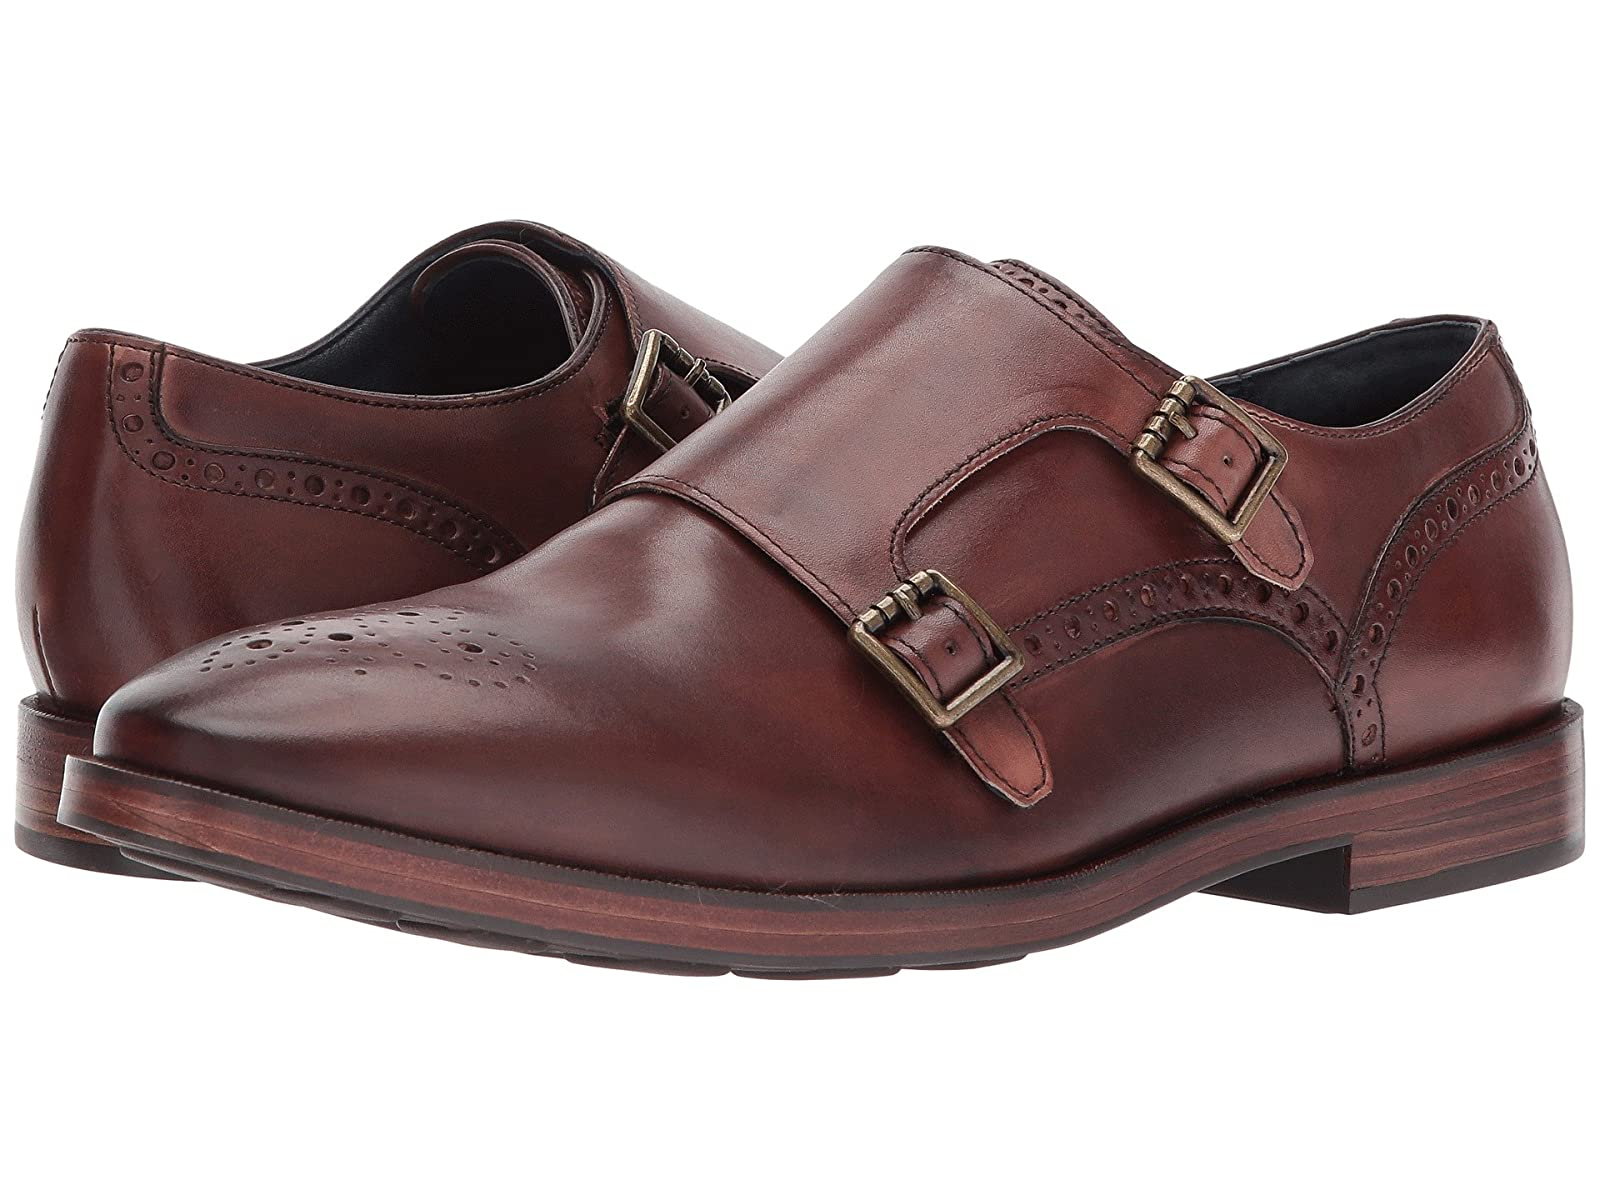 Cole Haan Hamilton Grand Double MonkCheap and distinctive eye-catching shoes